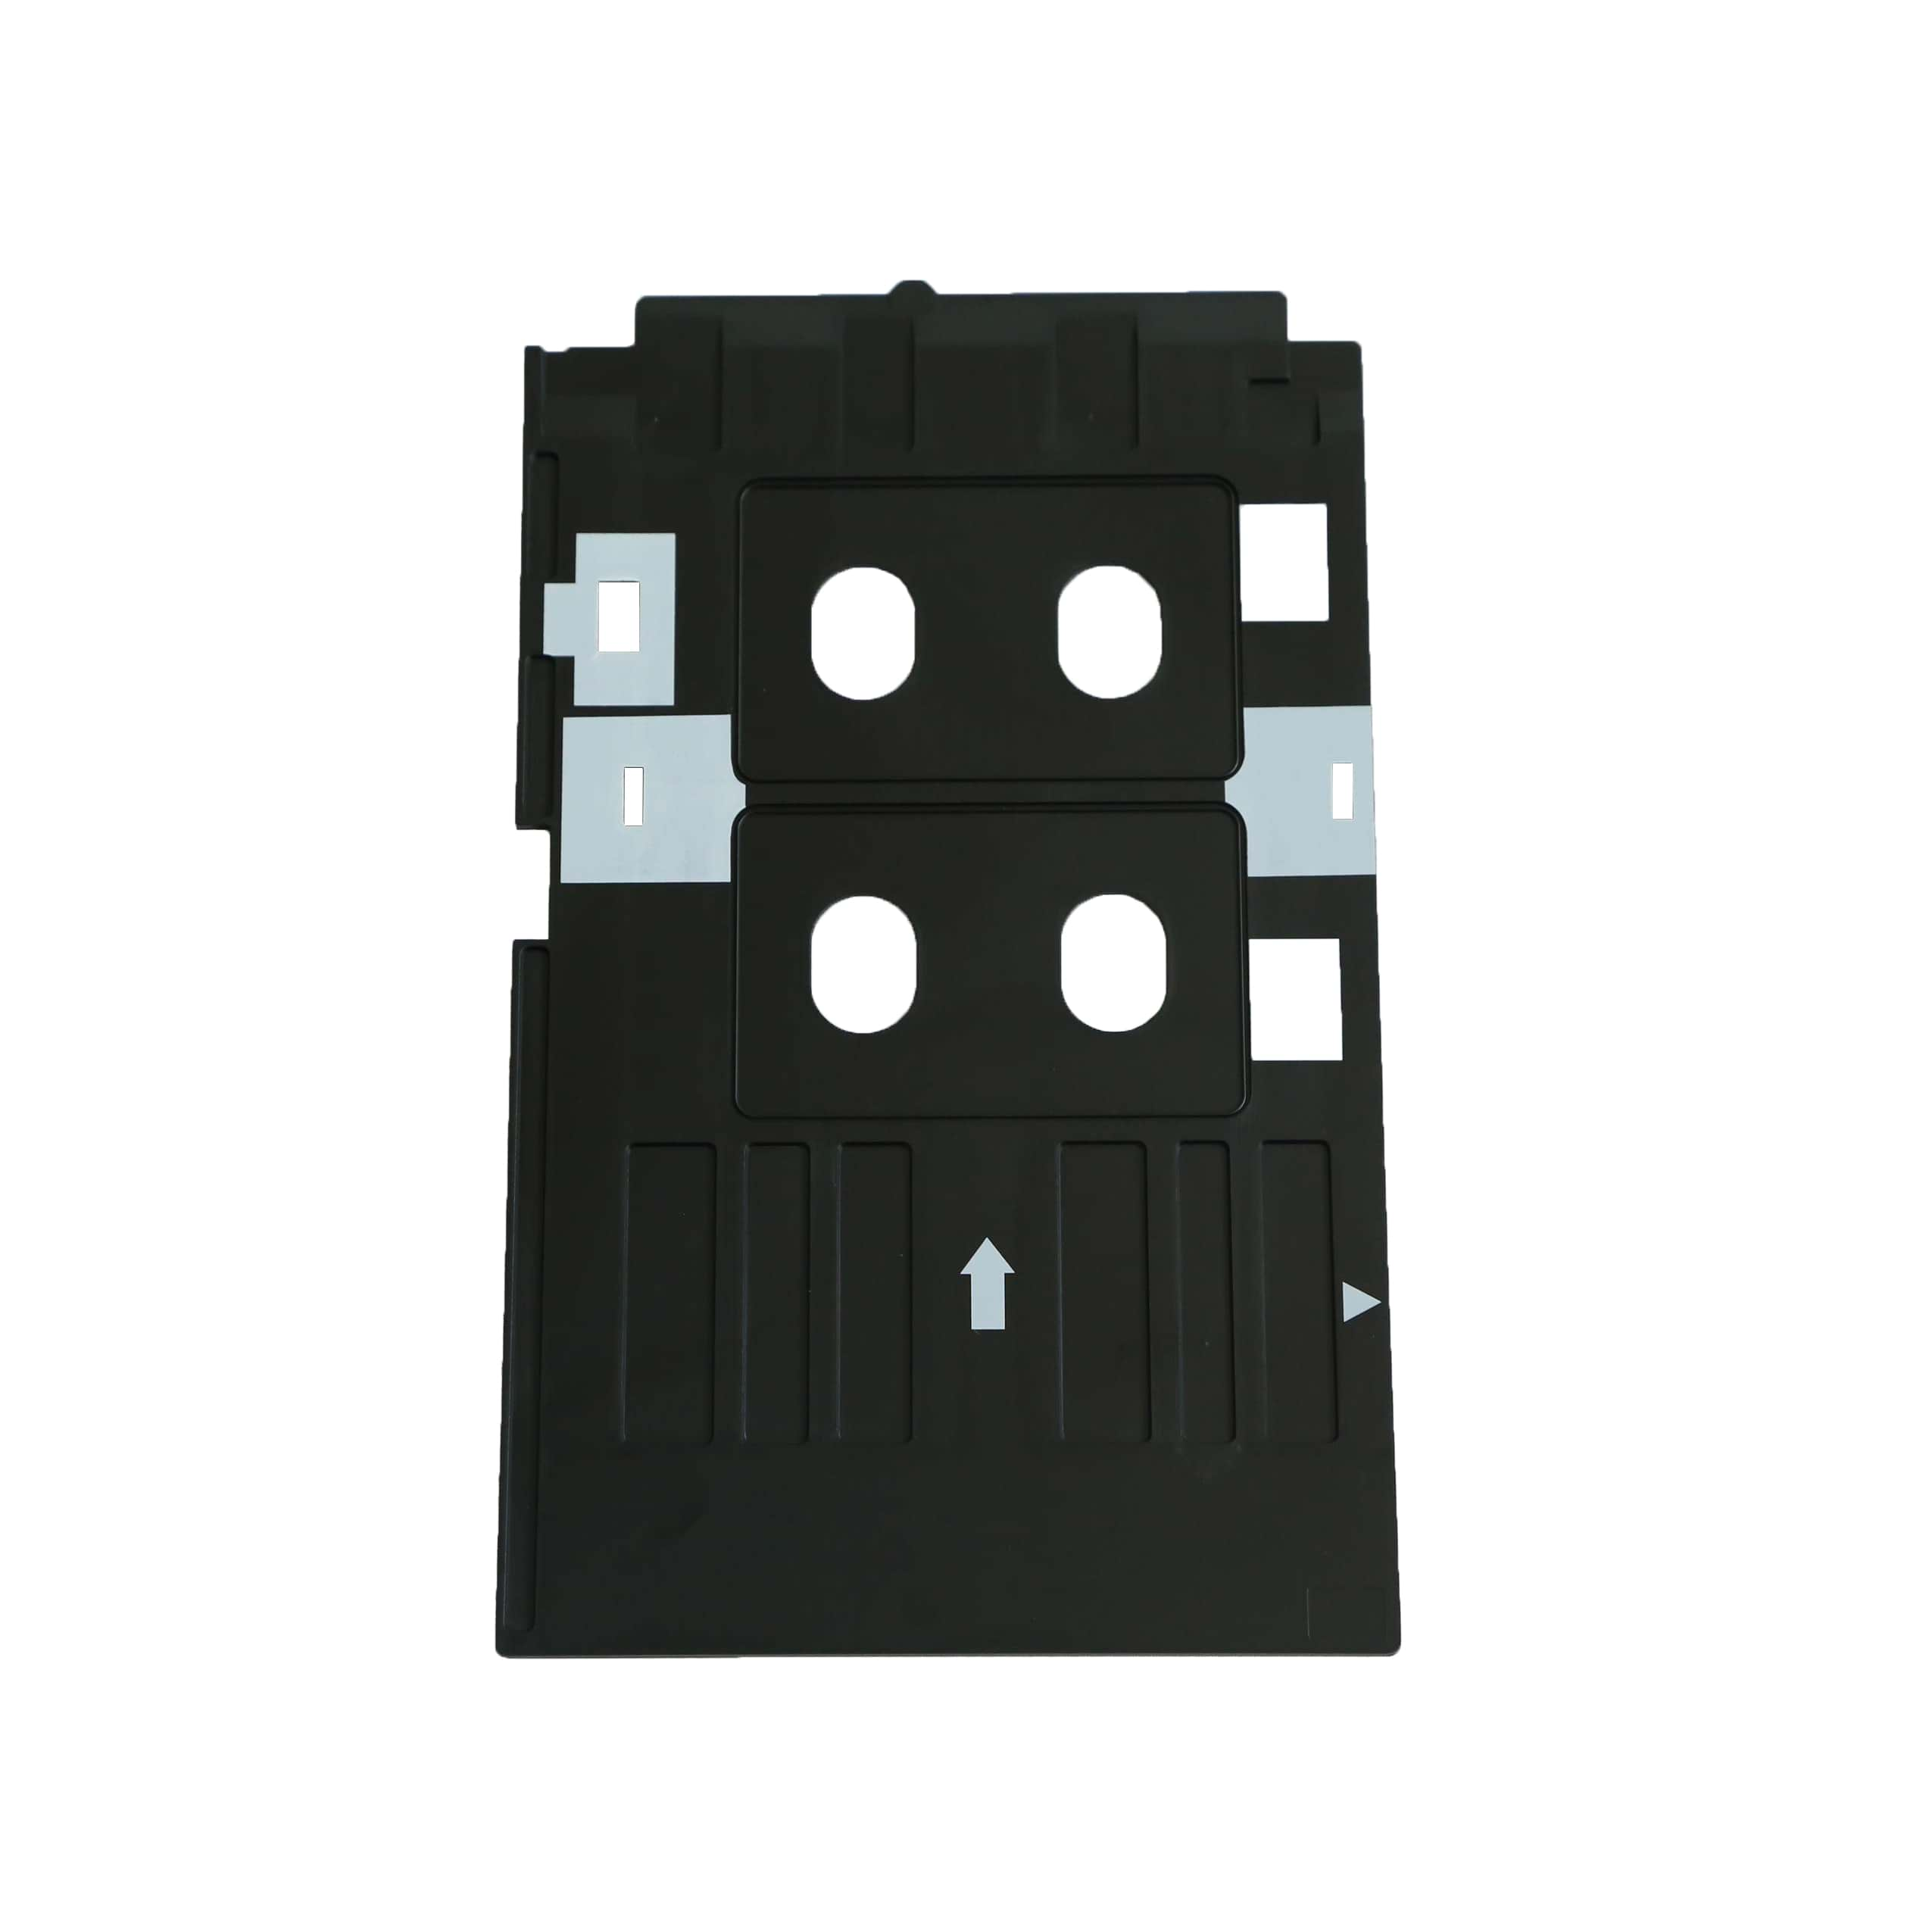 PVC ID Card Tray for Epson T50 and More